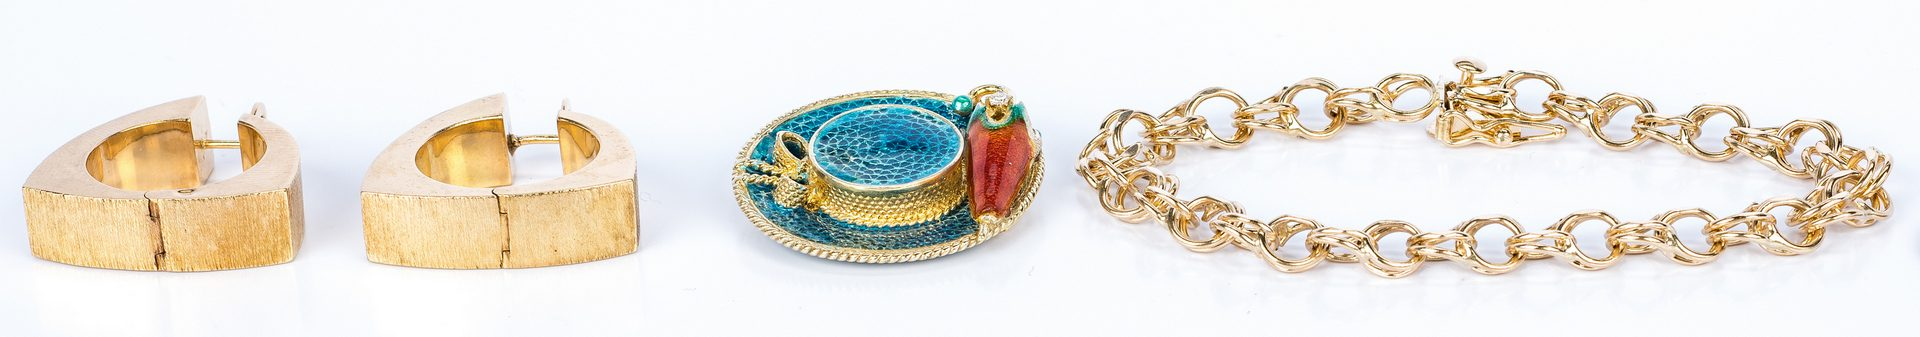 Lot 435: 3 18K and 14K gold Jewelry Items